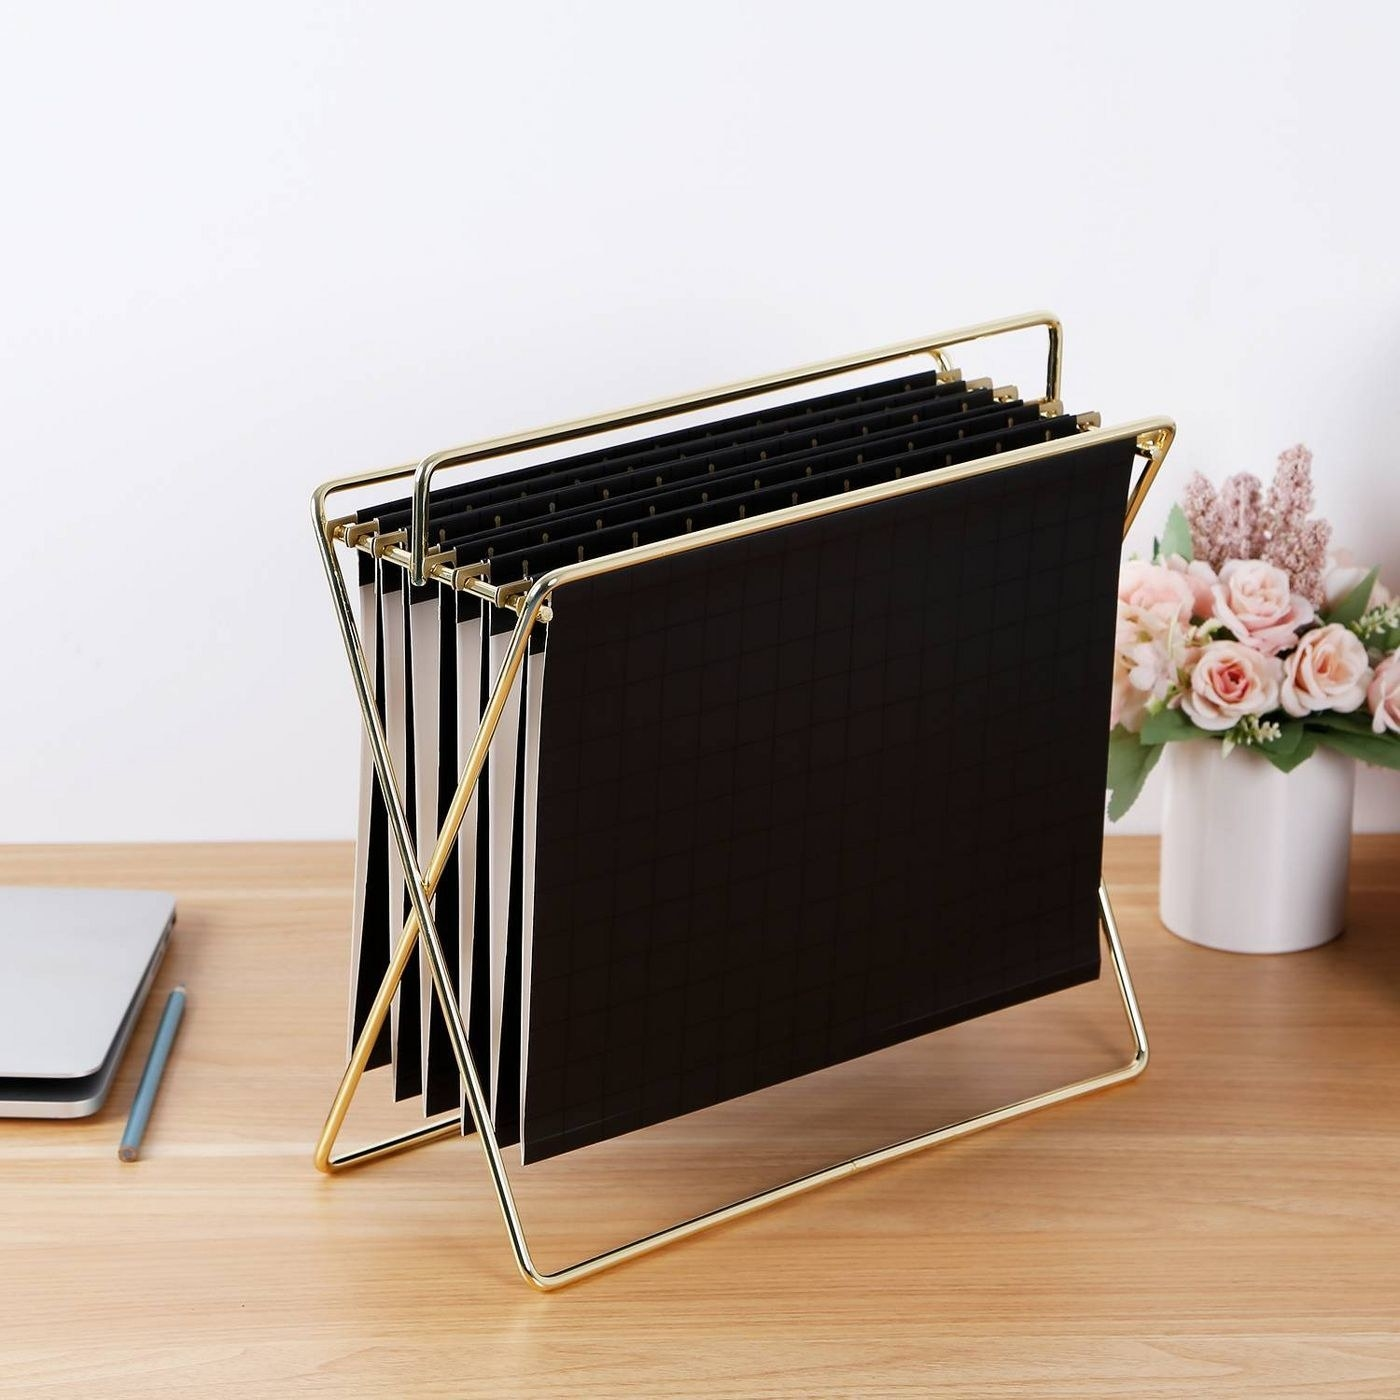 The gold-colored file hanger, which is collapsable and comprised of two frame pieces and bars between them that hang the files